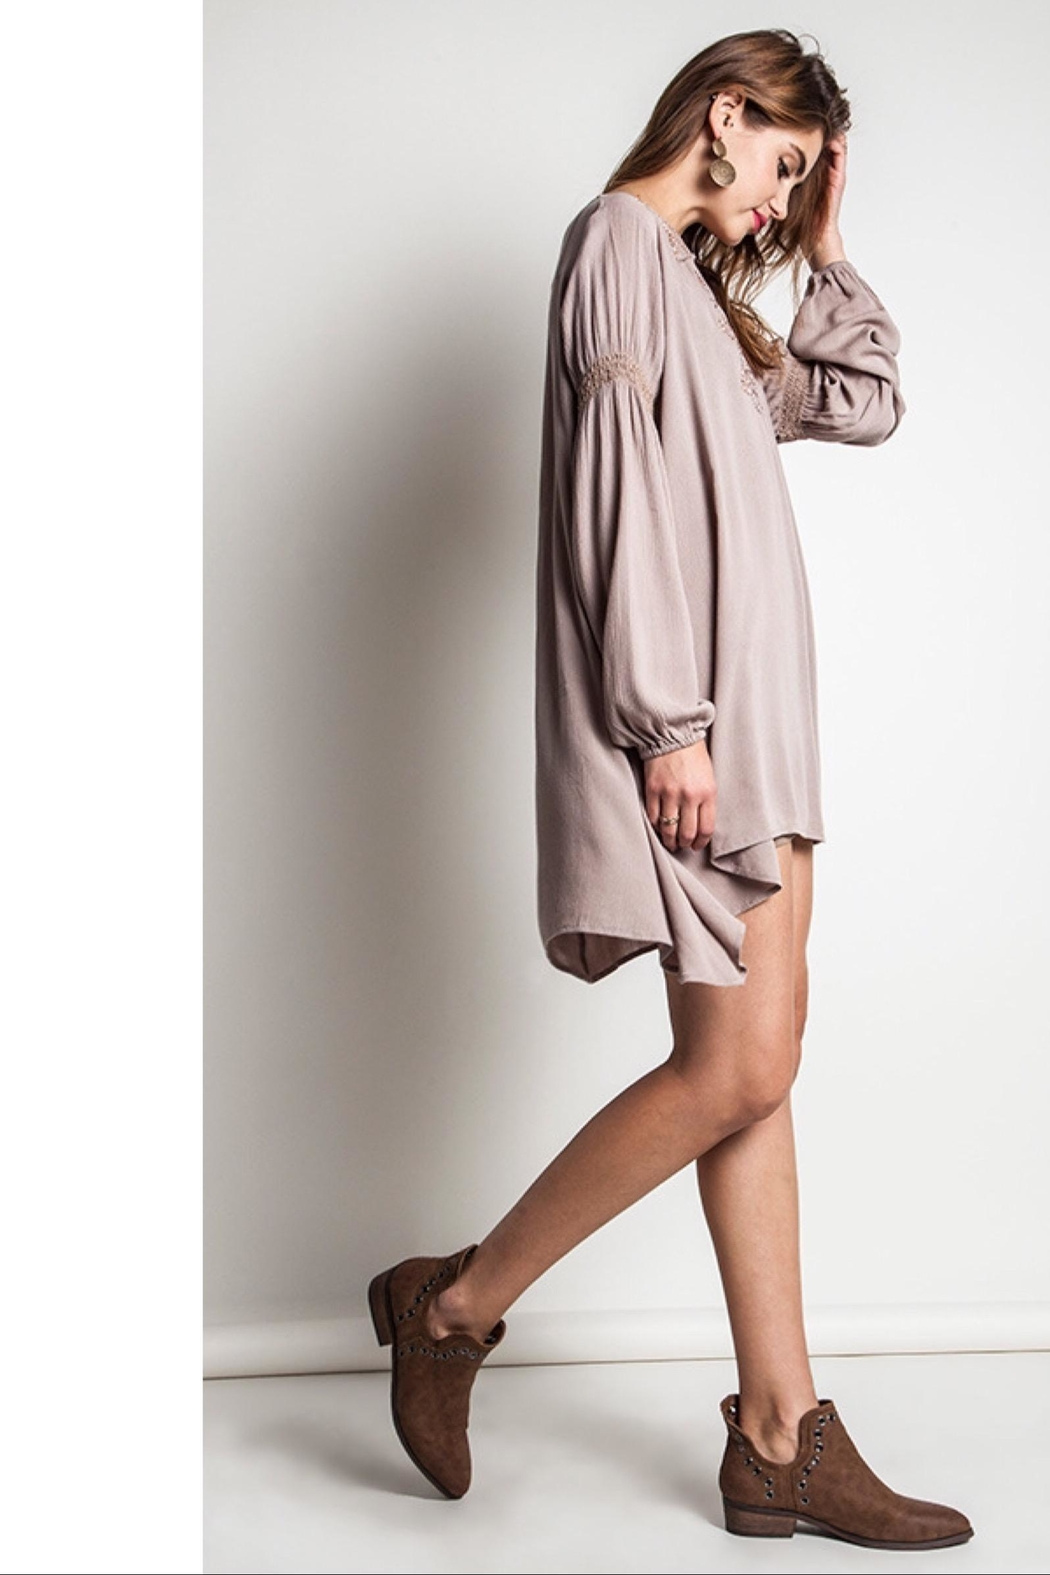 People Outfitter Taupe Bishop Sleeves Embroidery Tunic Dress - Front Full Image